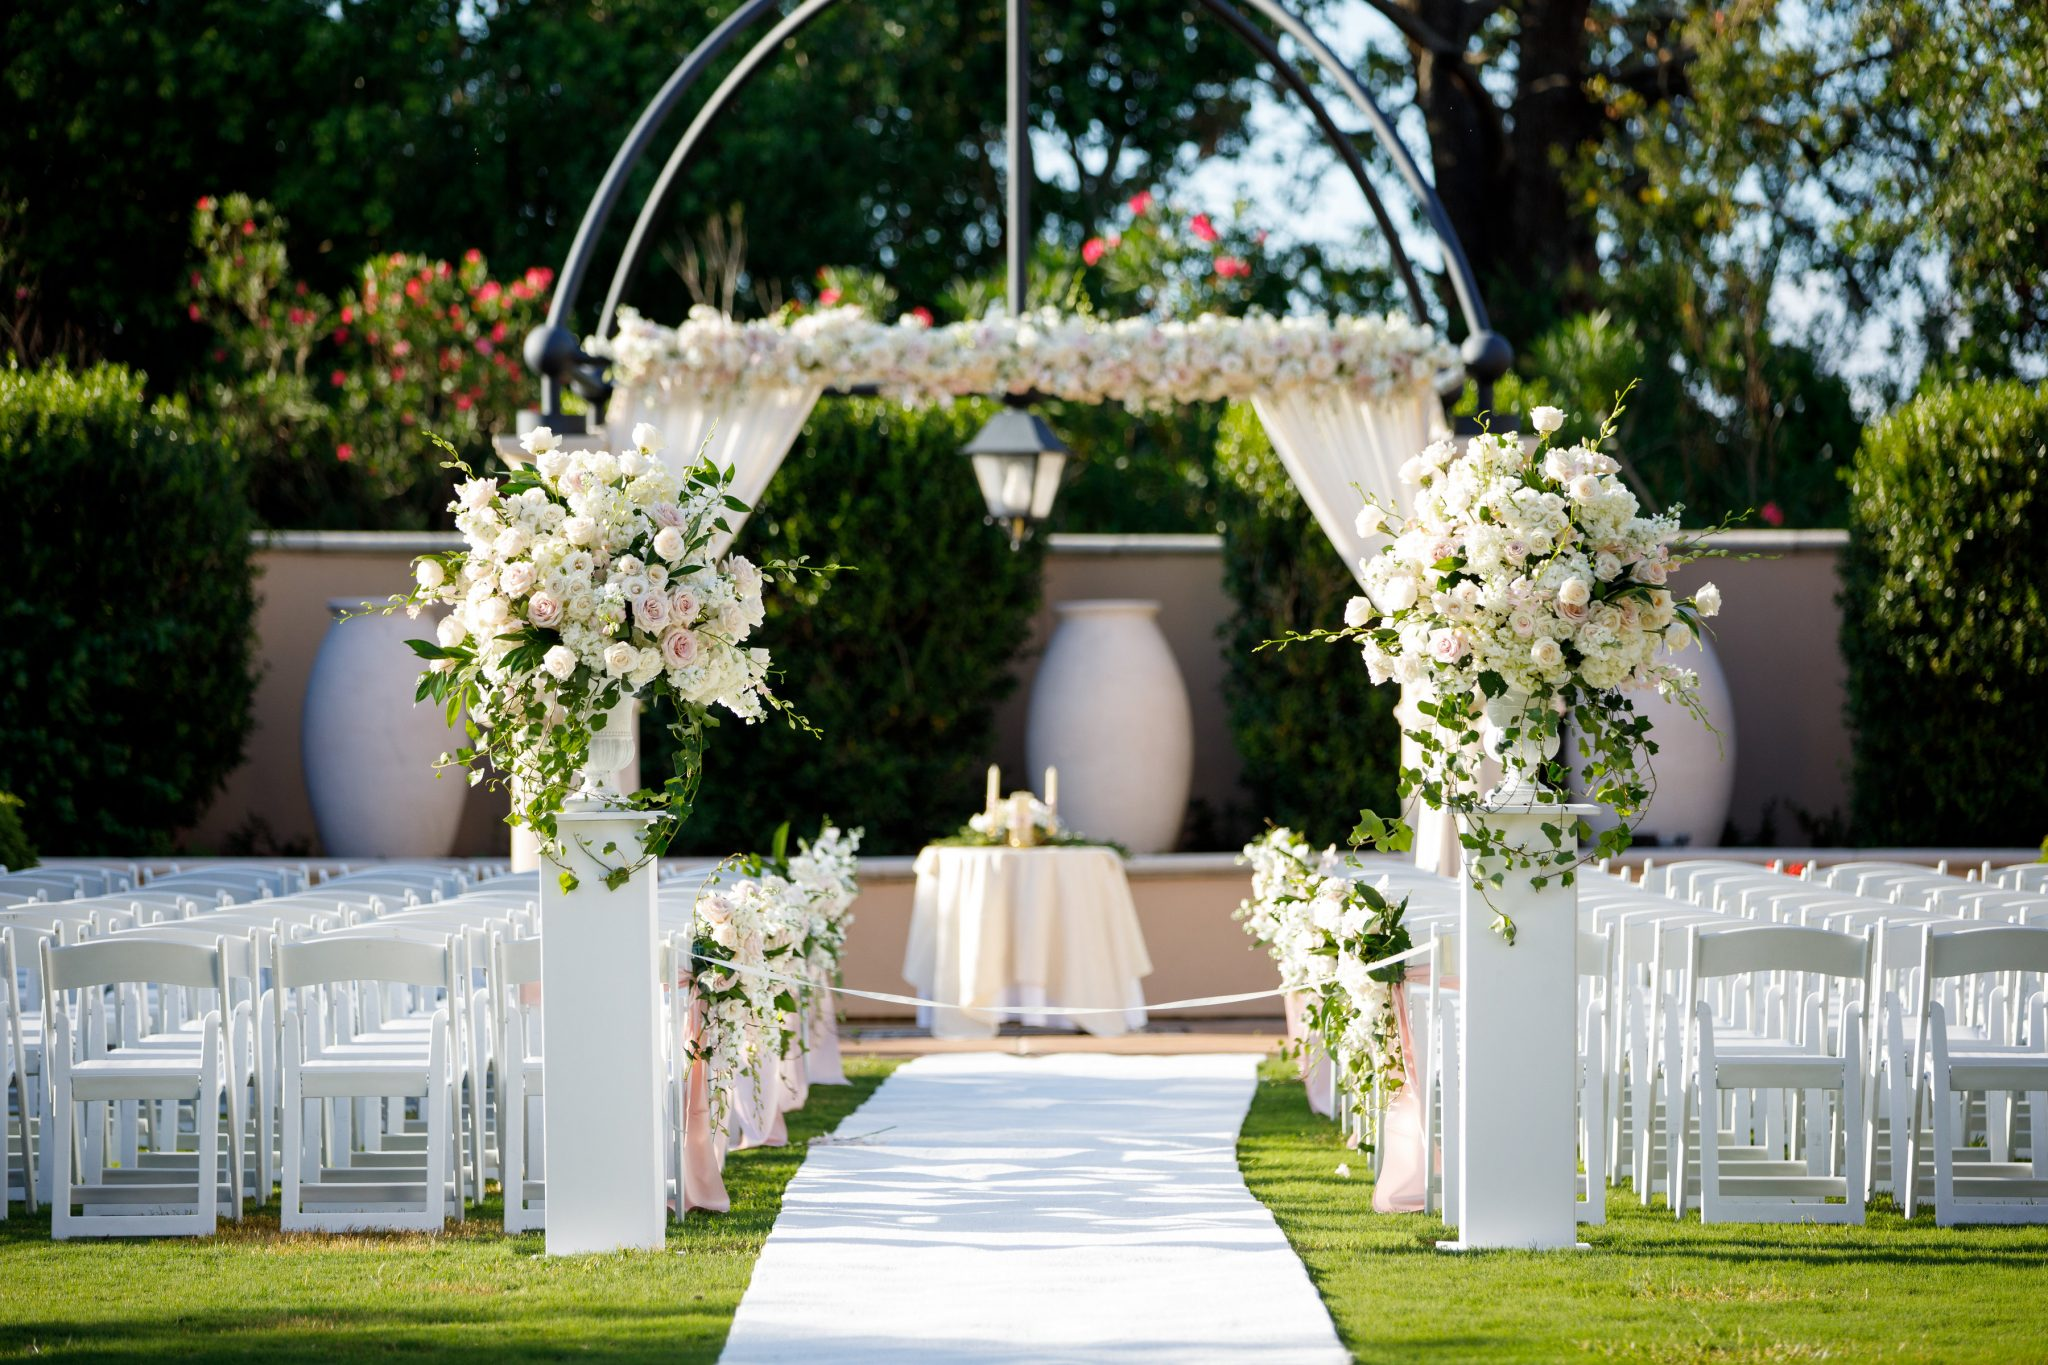 Wedding urns and pedestals